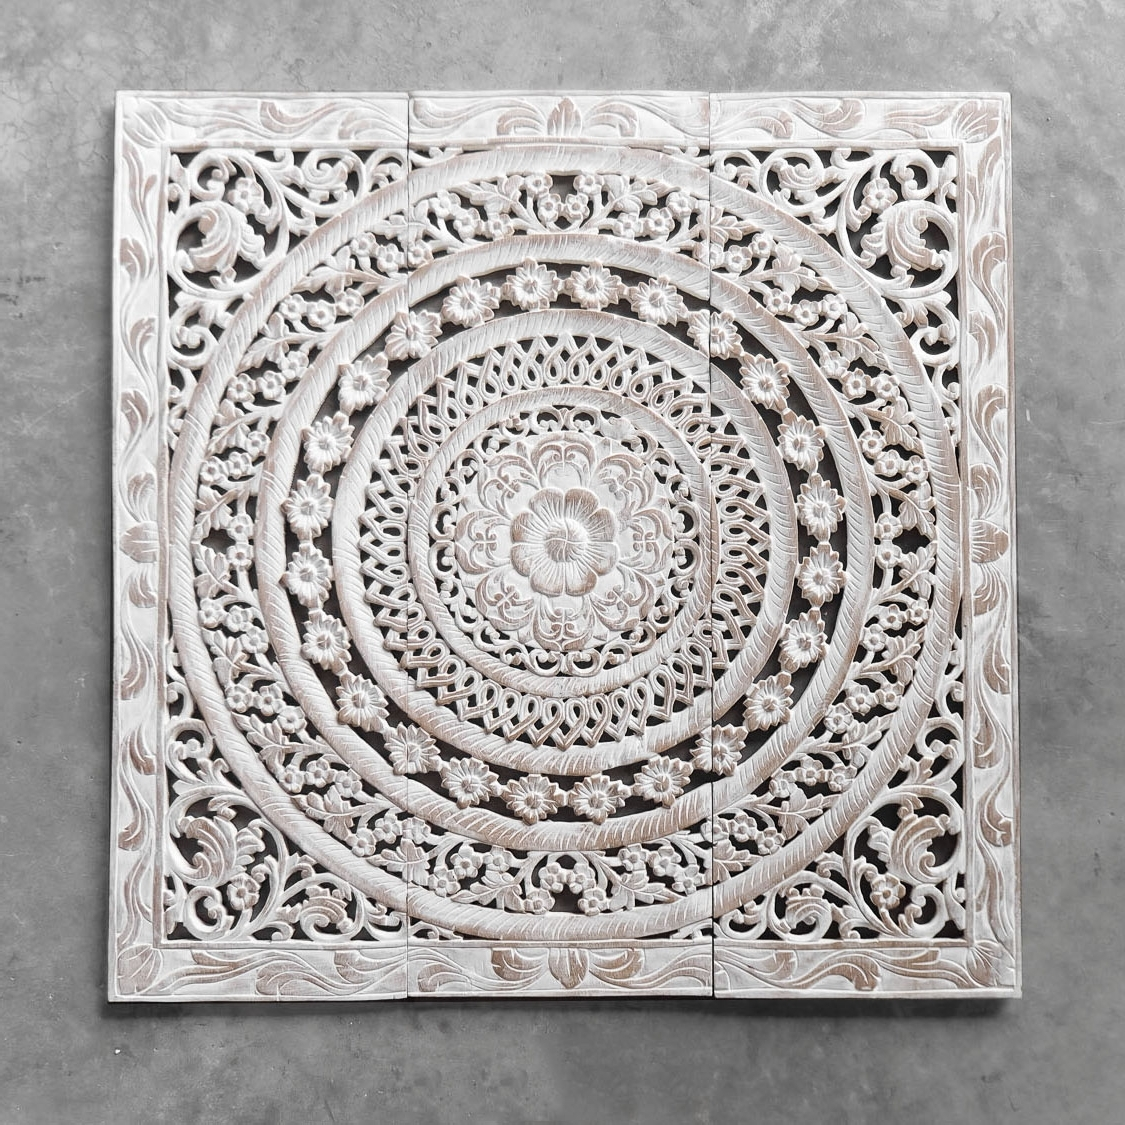 Wood Carved Wall Art Panels With Regard To Current Moroccan Decent Wood Carving Wall Art Hanging – Siam Sawadee (View 3 of 15)